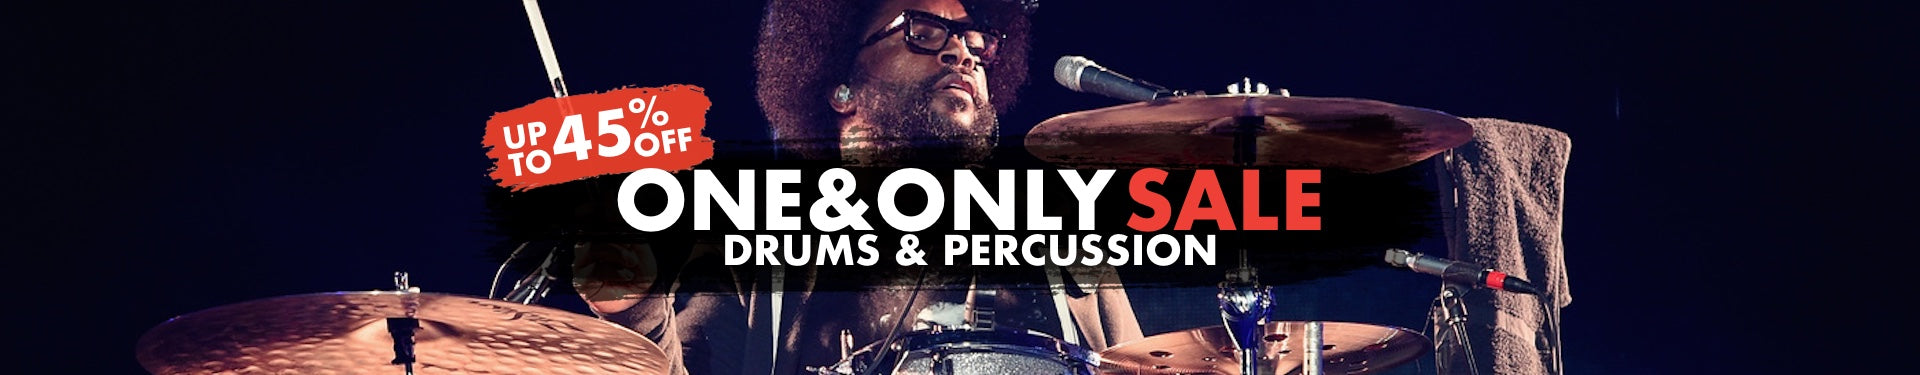 One & Only Drums & Percussion Sale